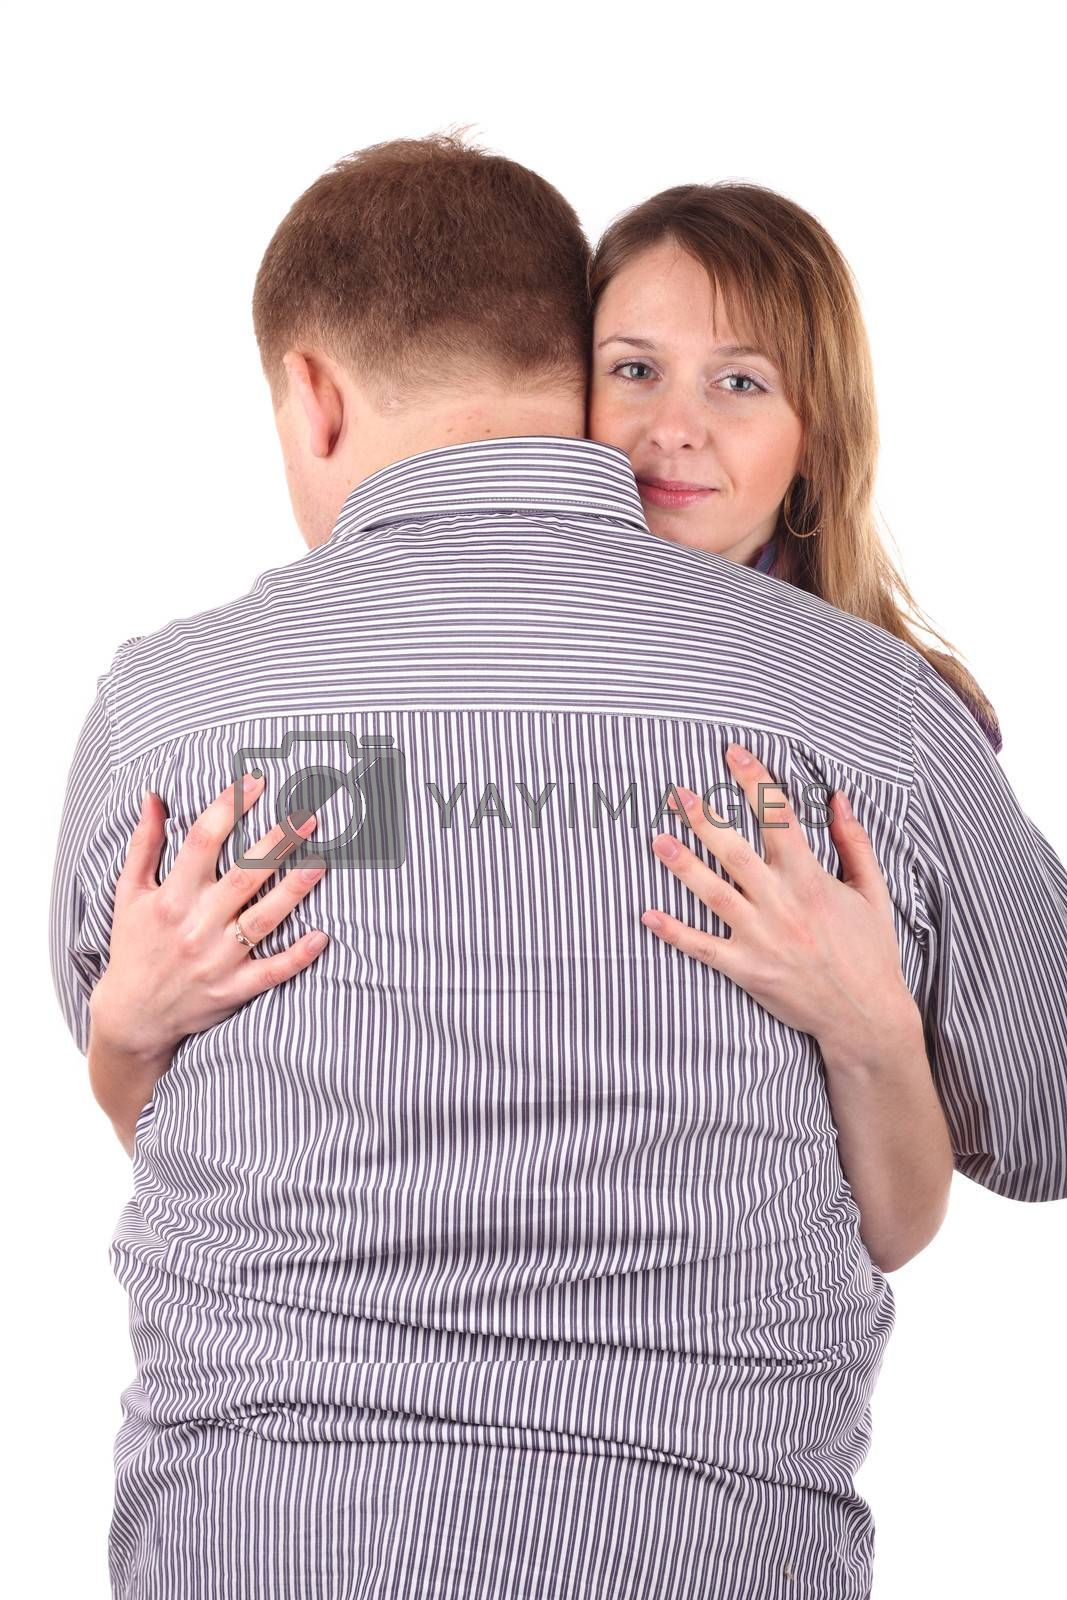 Girl embracing man isolated on the white background